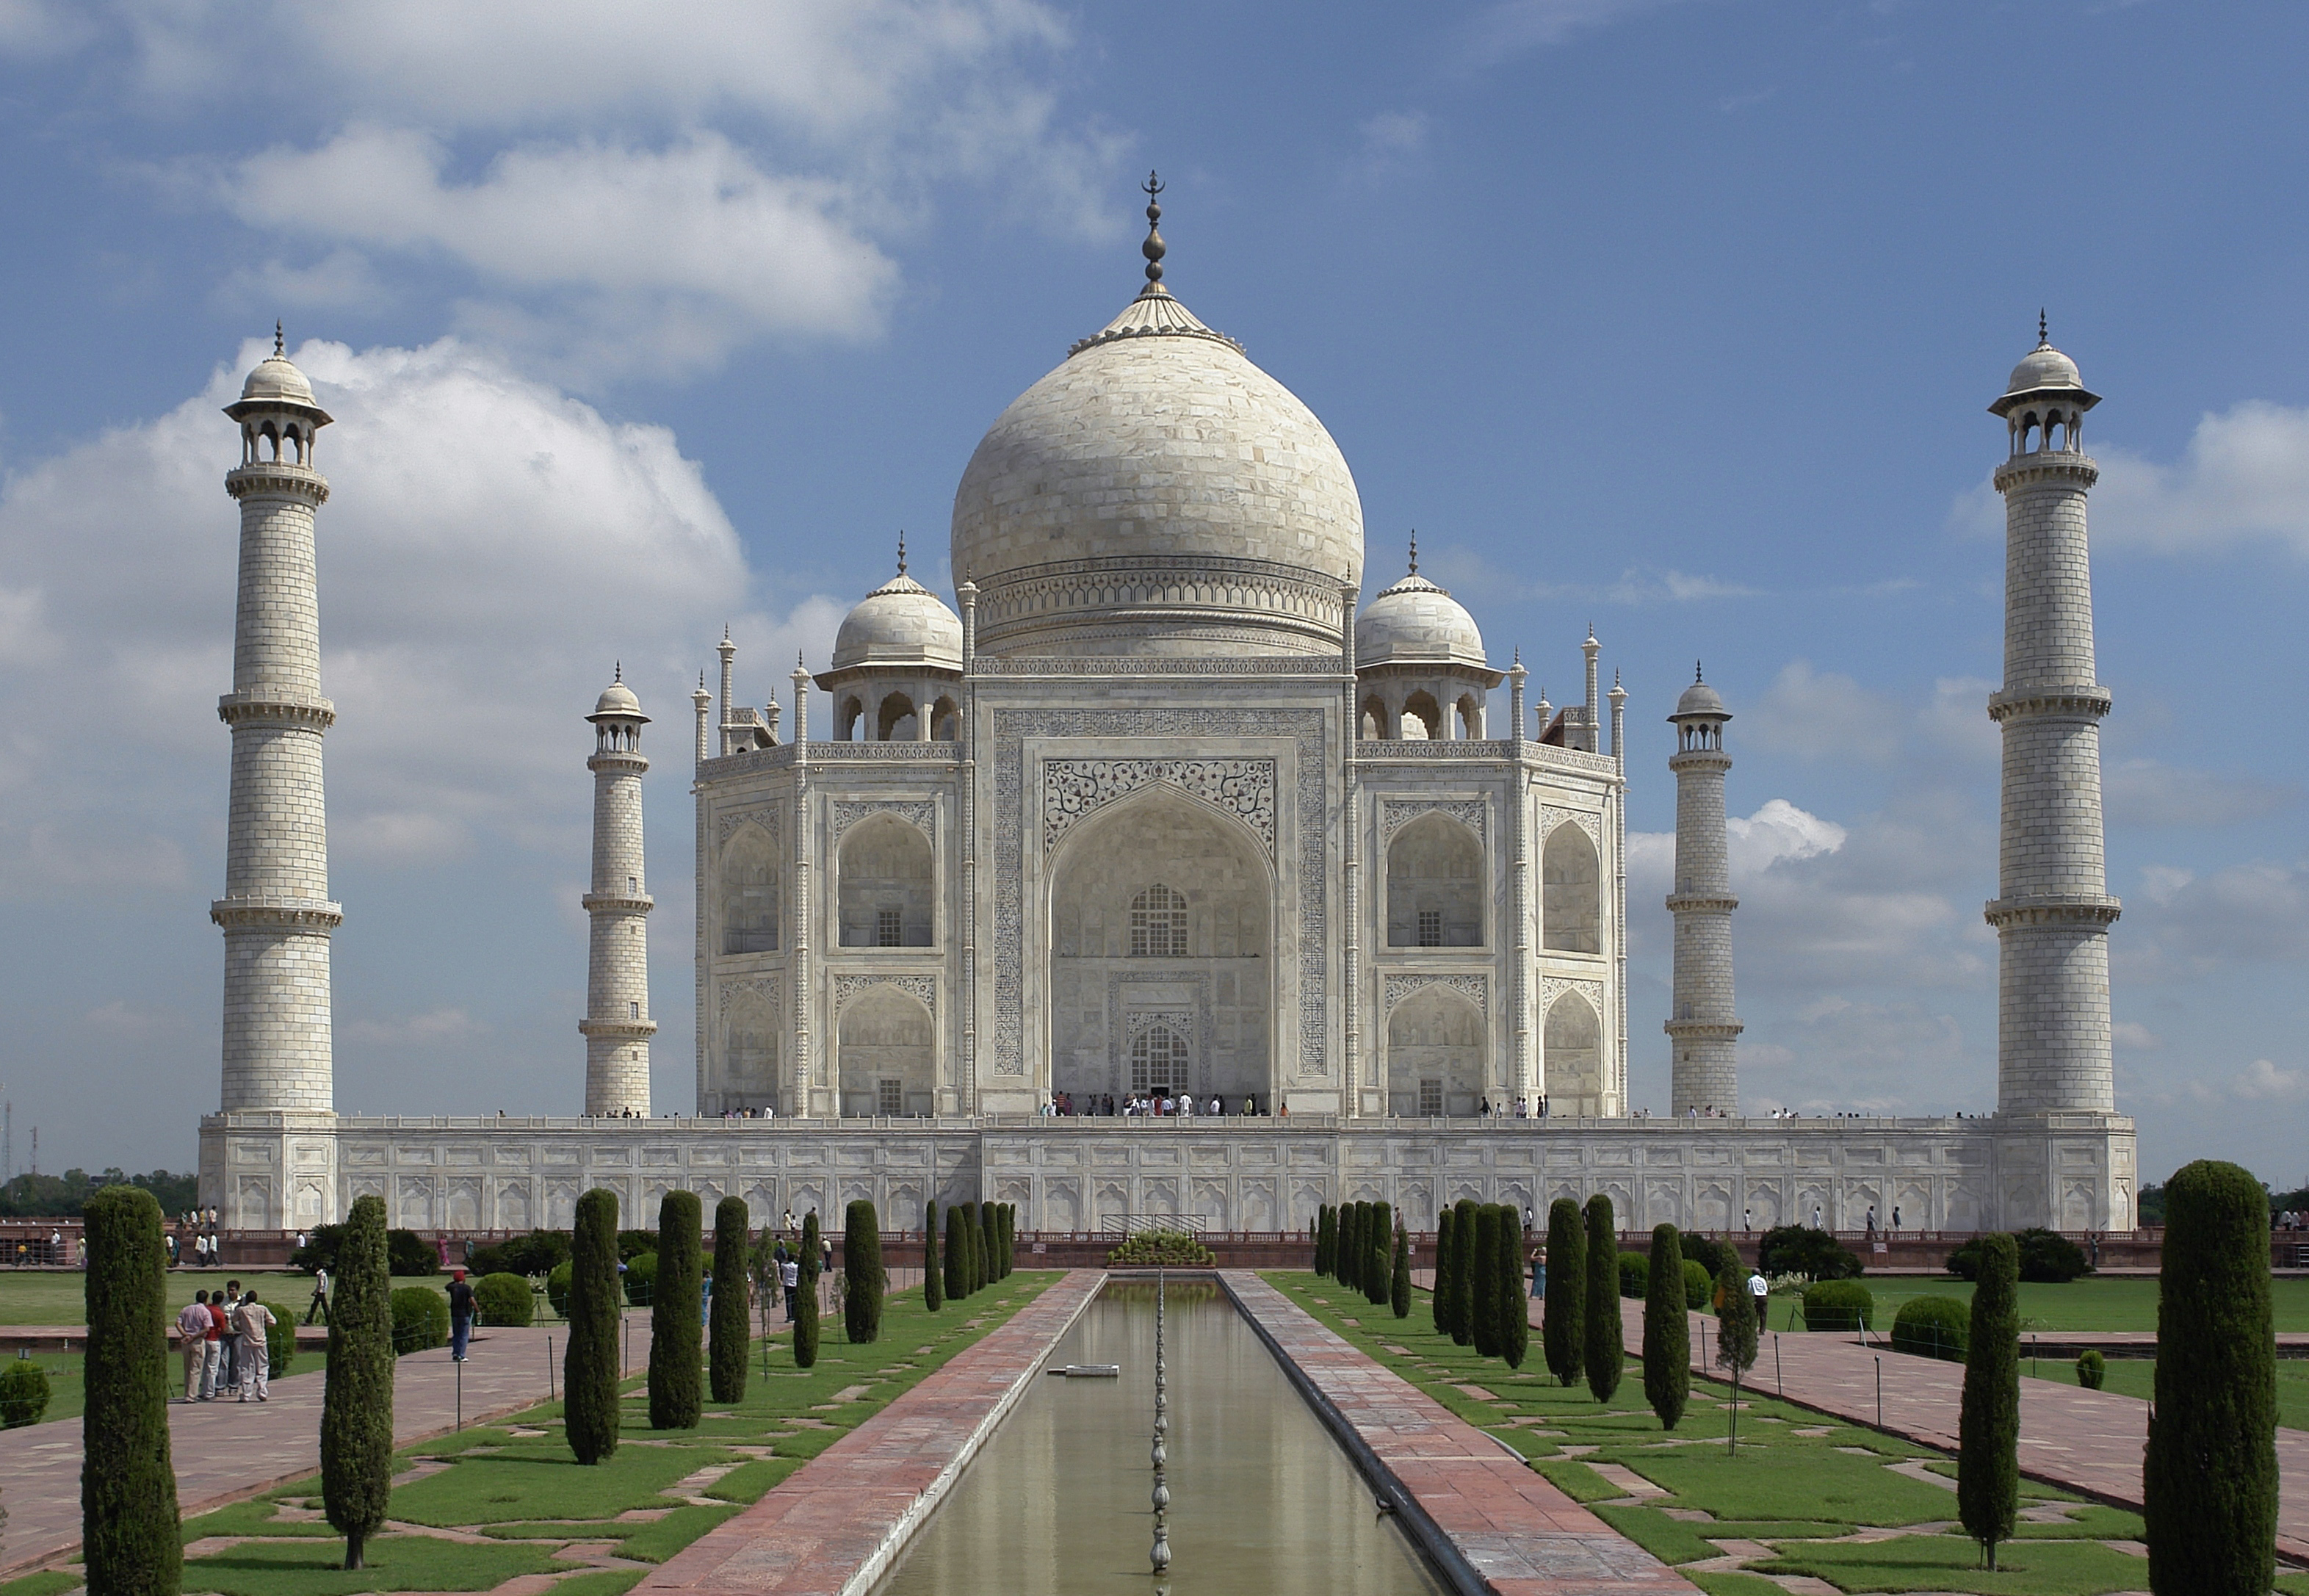 Southern view of the Taj Mahal.